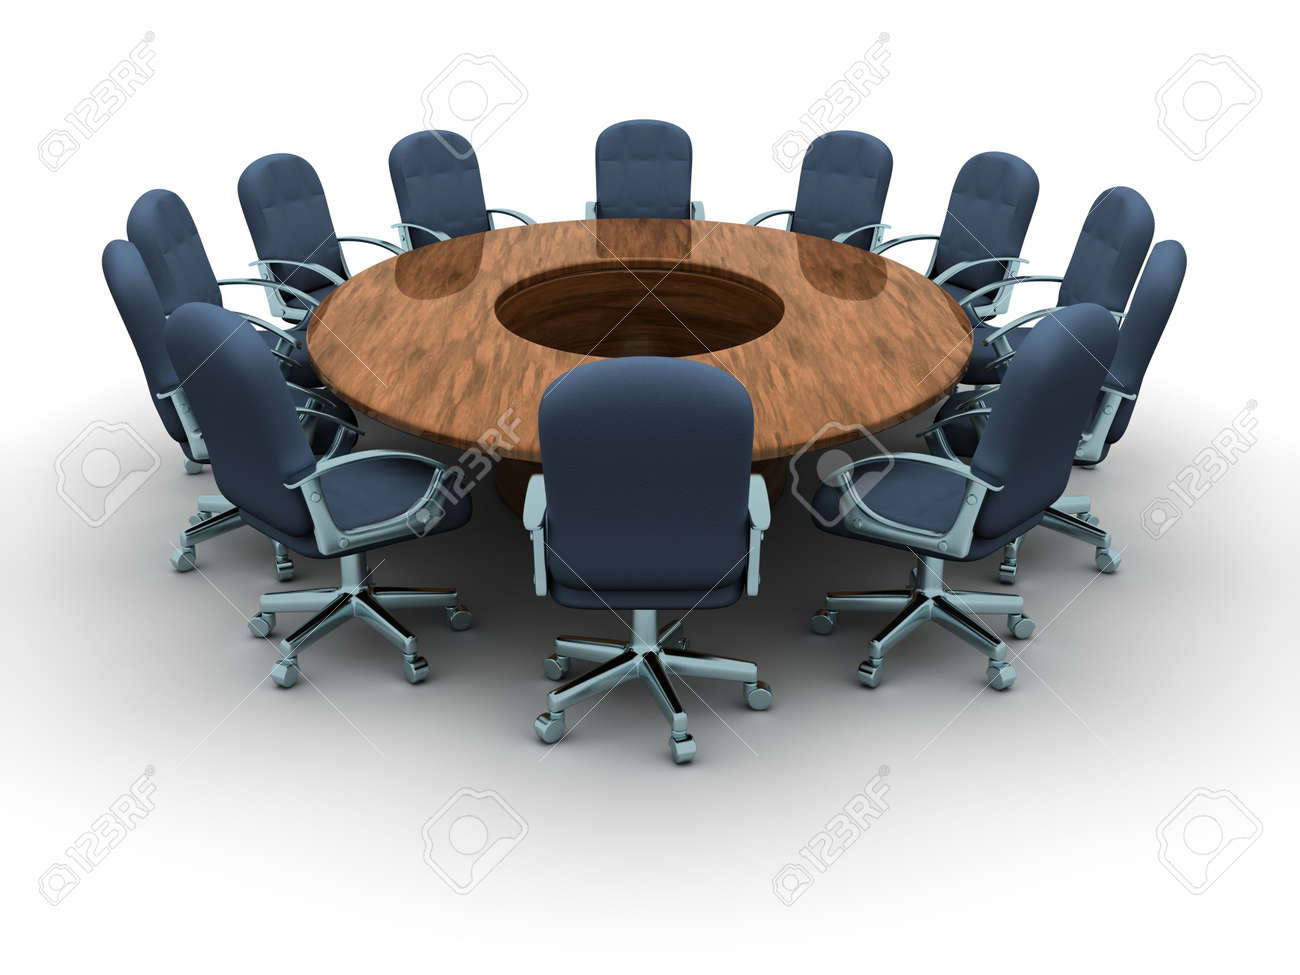 Round Conference Table And Chairs a Round Conference Table With